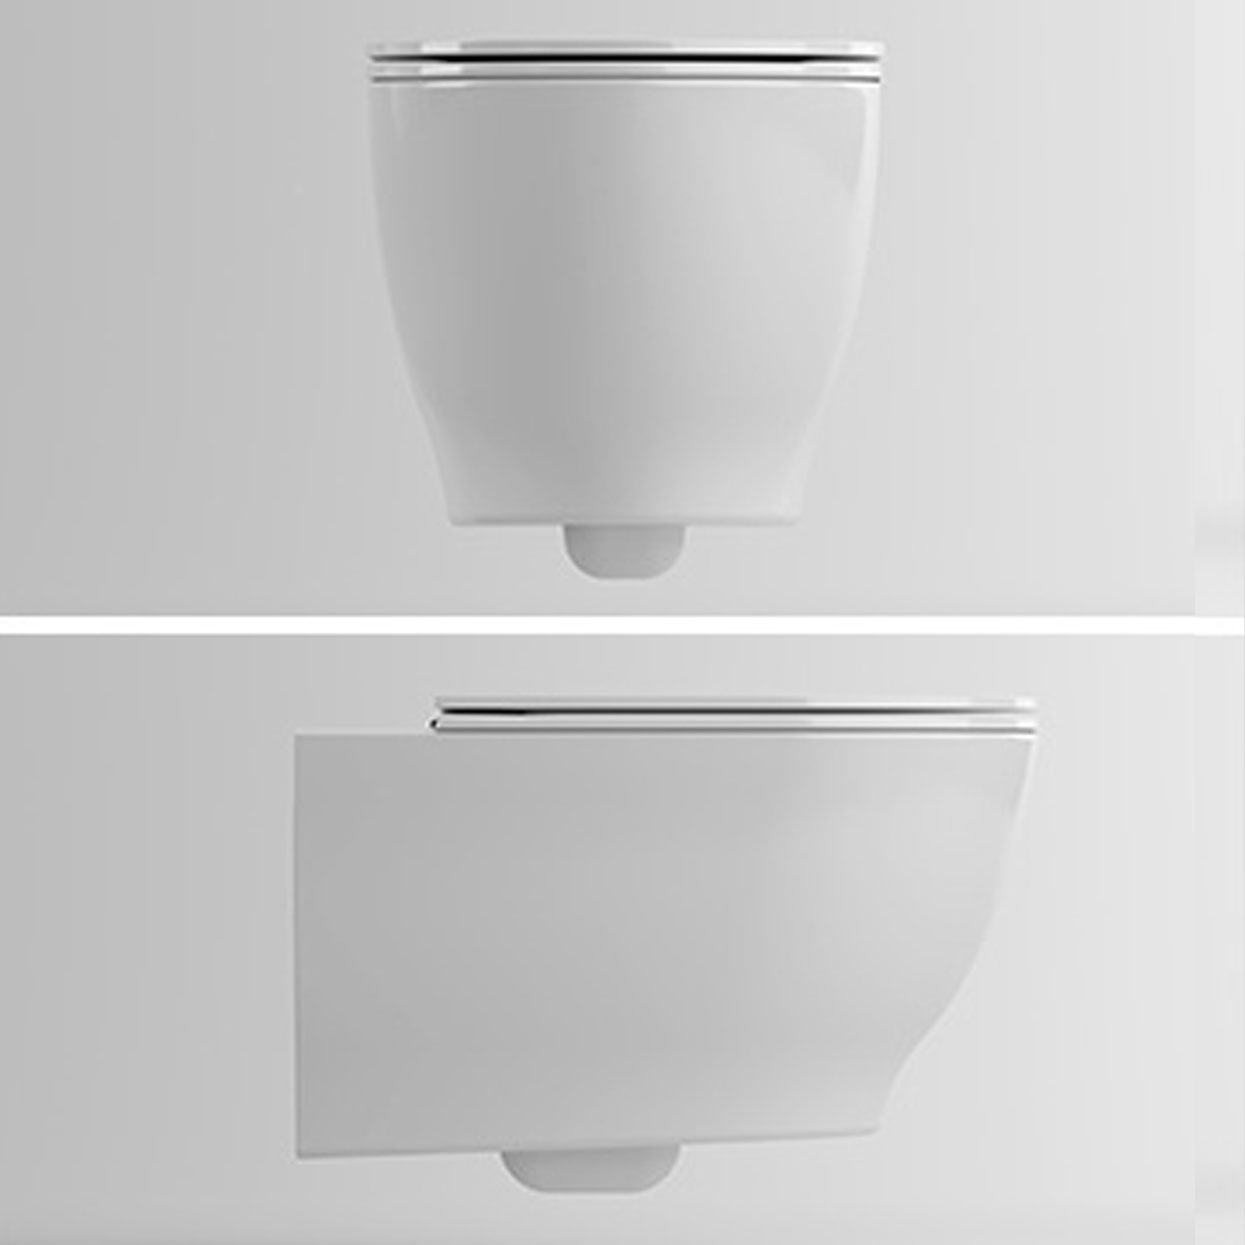 Glow Toilet with rimless Wall-hung White 56 x 36 x 30